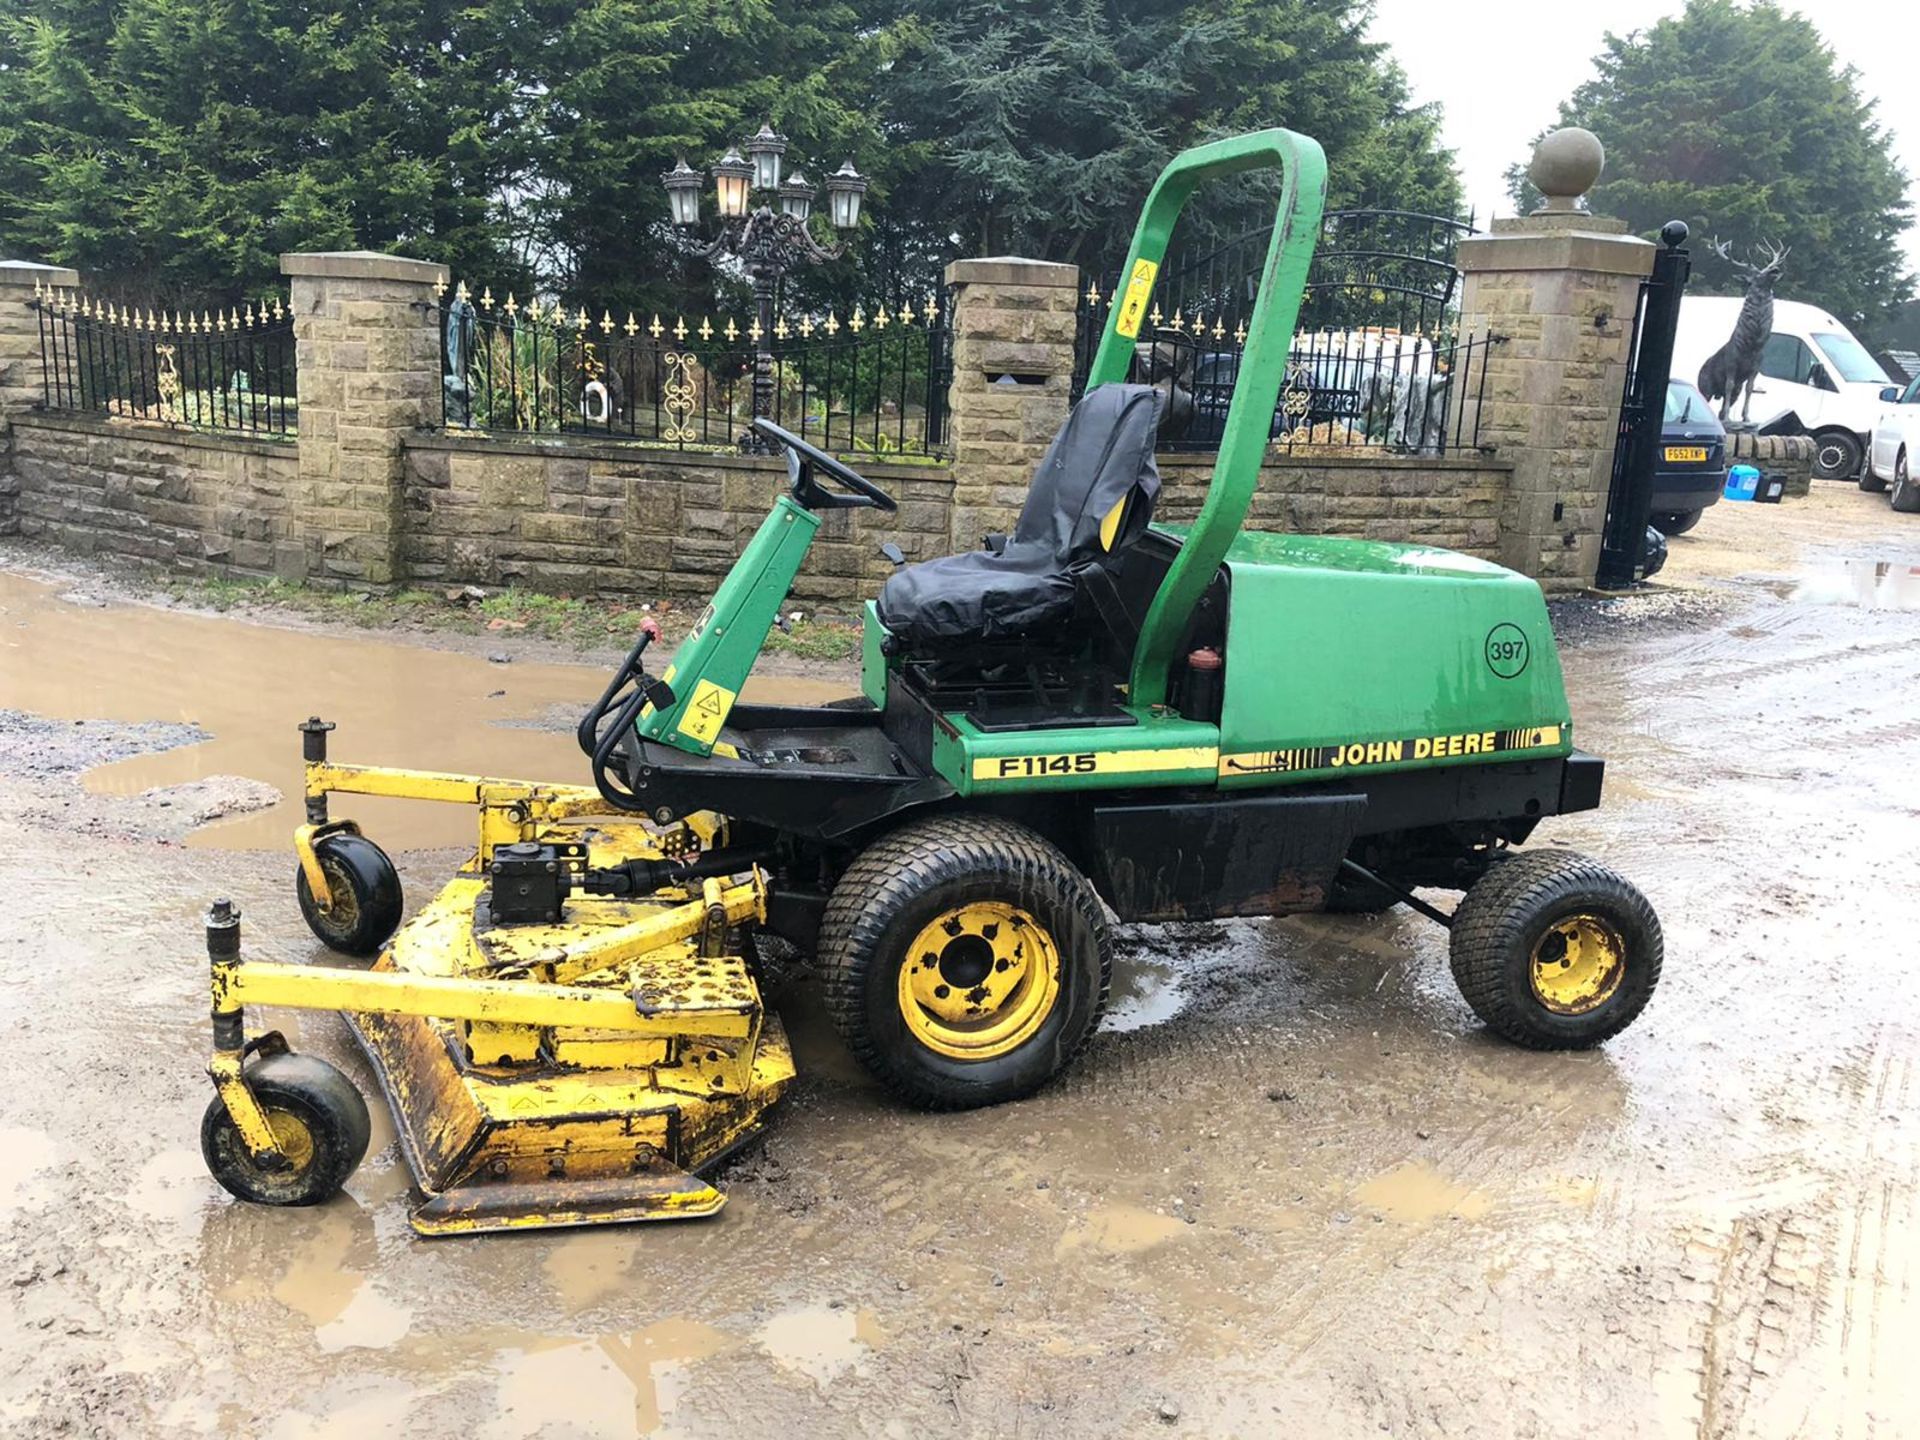 Los 151 - JOHN DEERE F1145 RIDE ON LAWN MOWER 4WD, C/W 1 ROTARY DECK, RUNS, WORKS AND CUTS *NO VAT*